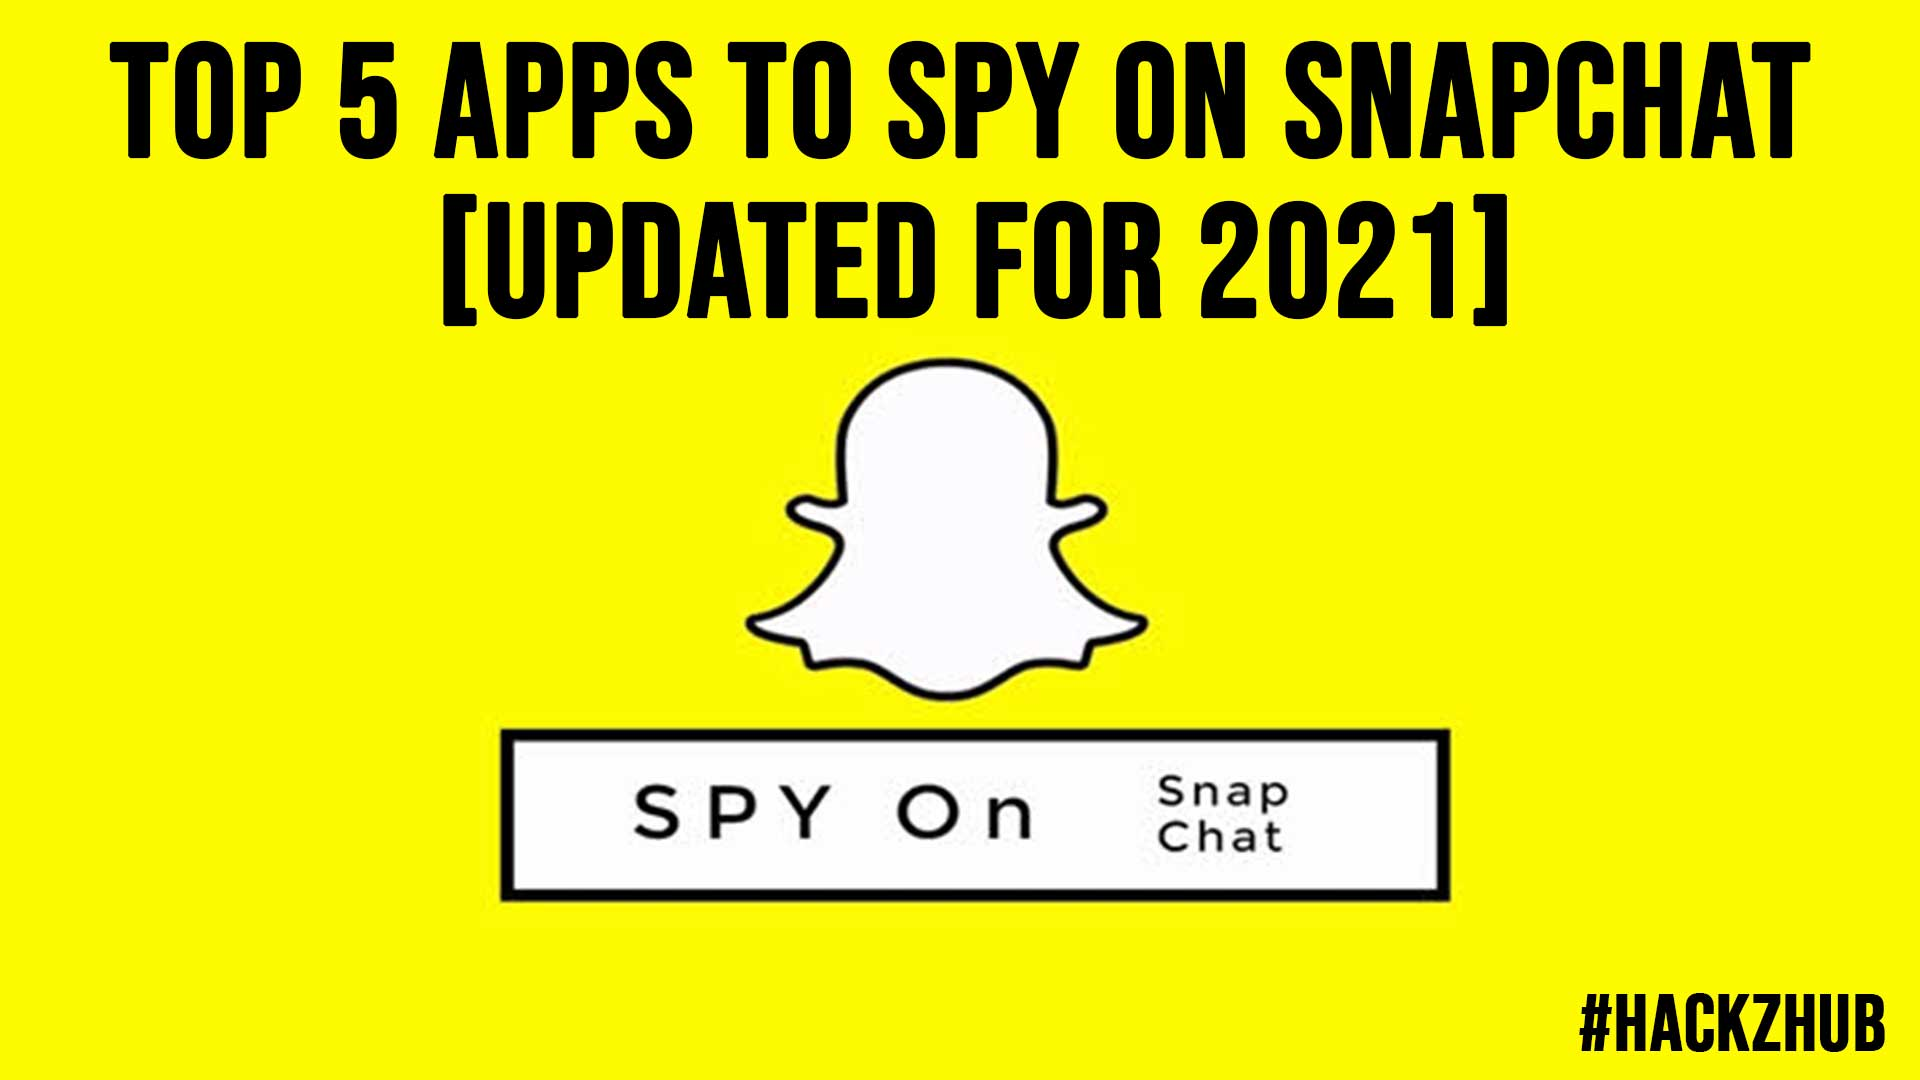 Top 5 Apps to Spy on Snapchat Updated for 2021